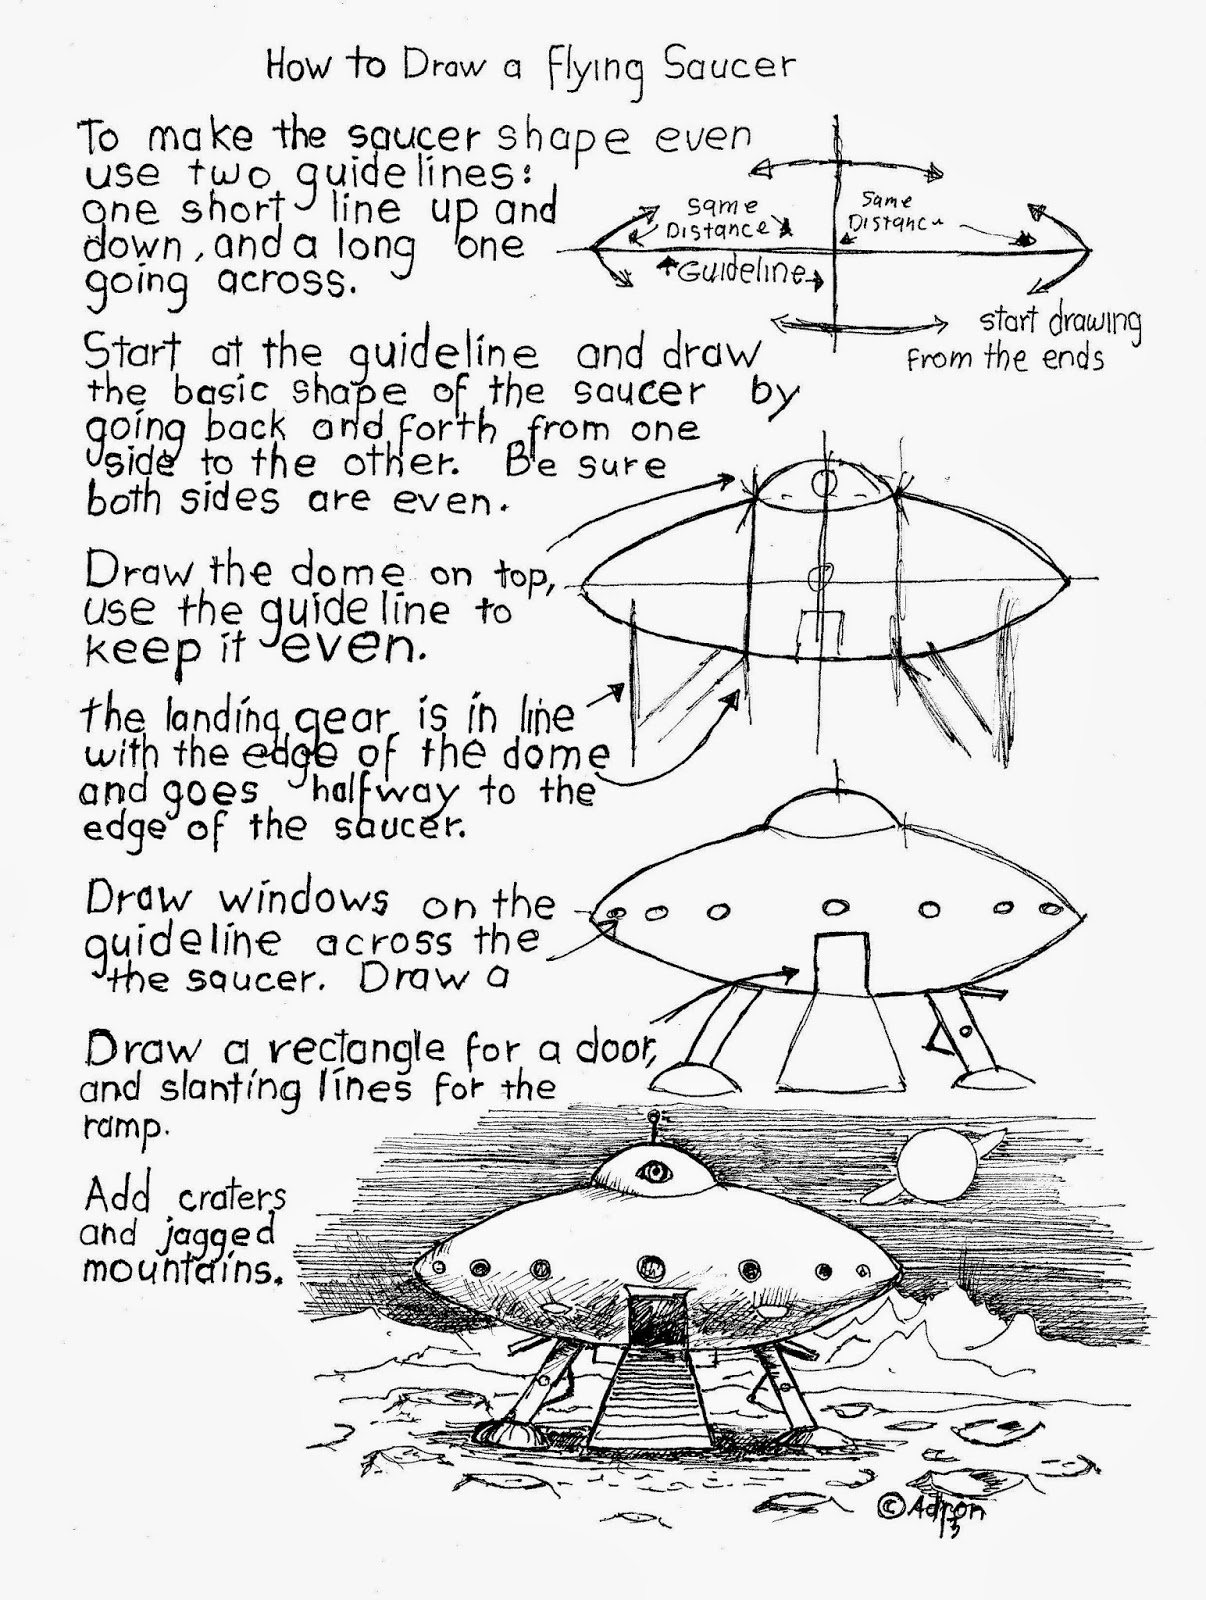 How To Draw Worksheets For The Young Artist How To Draw A Flying Saucer Worksheet Free